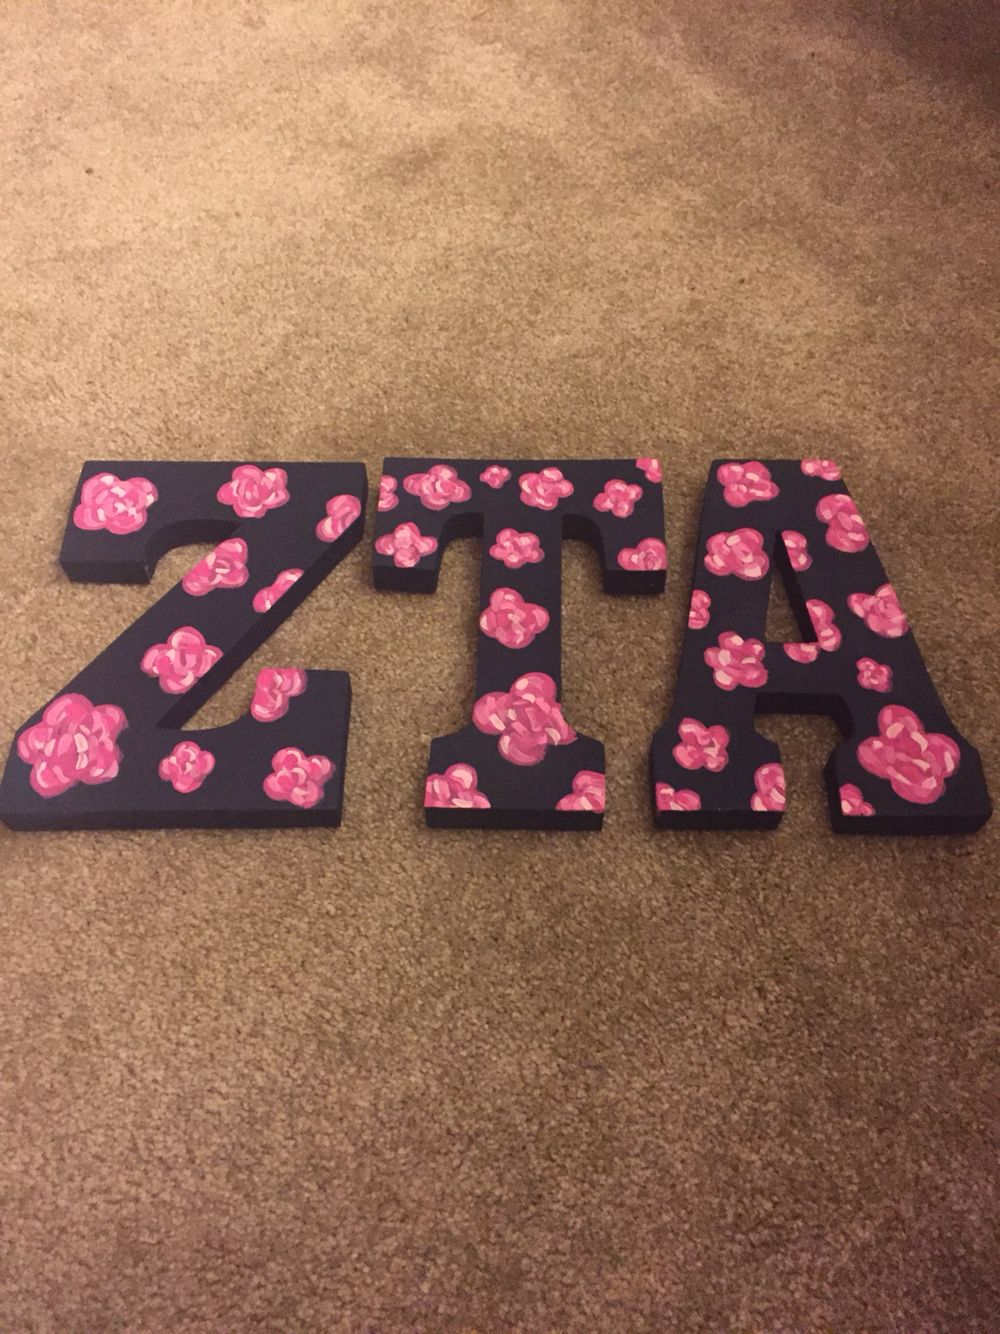 ZTA letters! I love the roses.